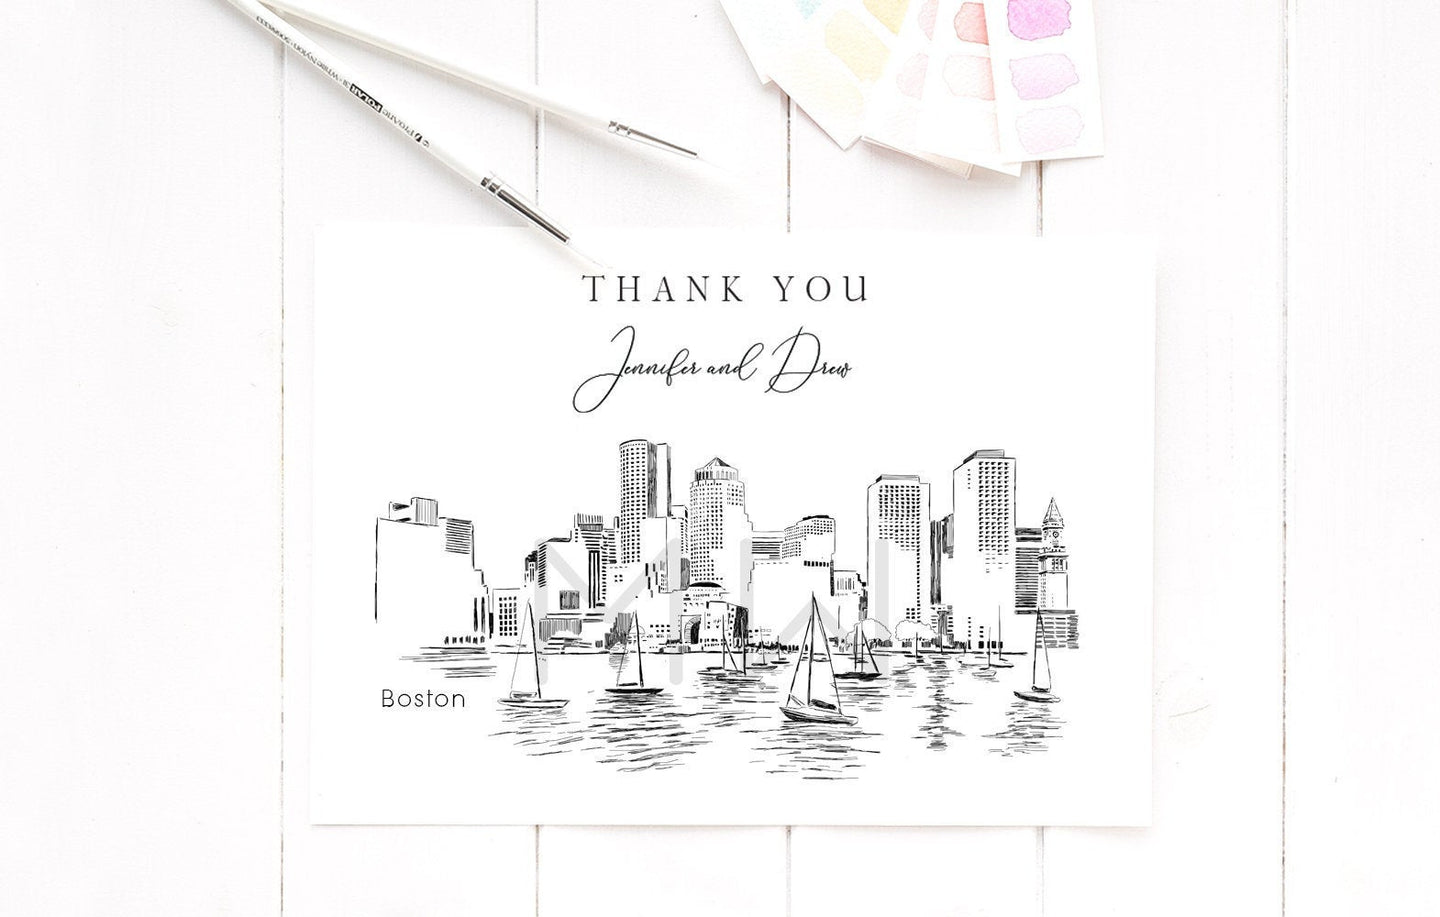 Boston Skyline Thank You Cards, Personal Note Cards, Bridal Shower Thank you Card Set, Corporate Thank you Cards (set of 25 cards)